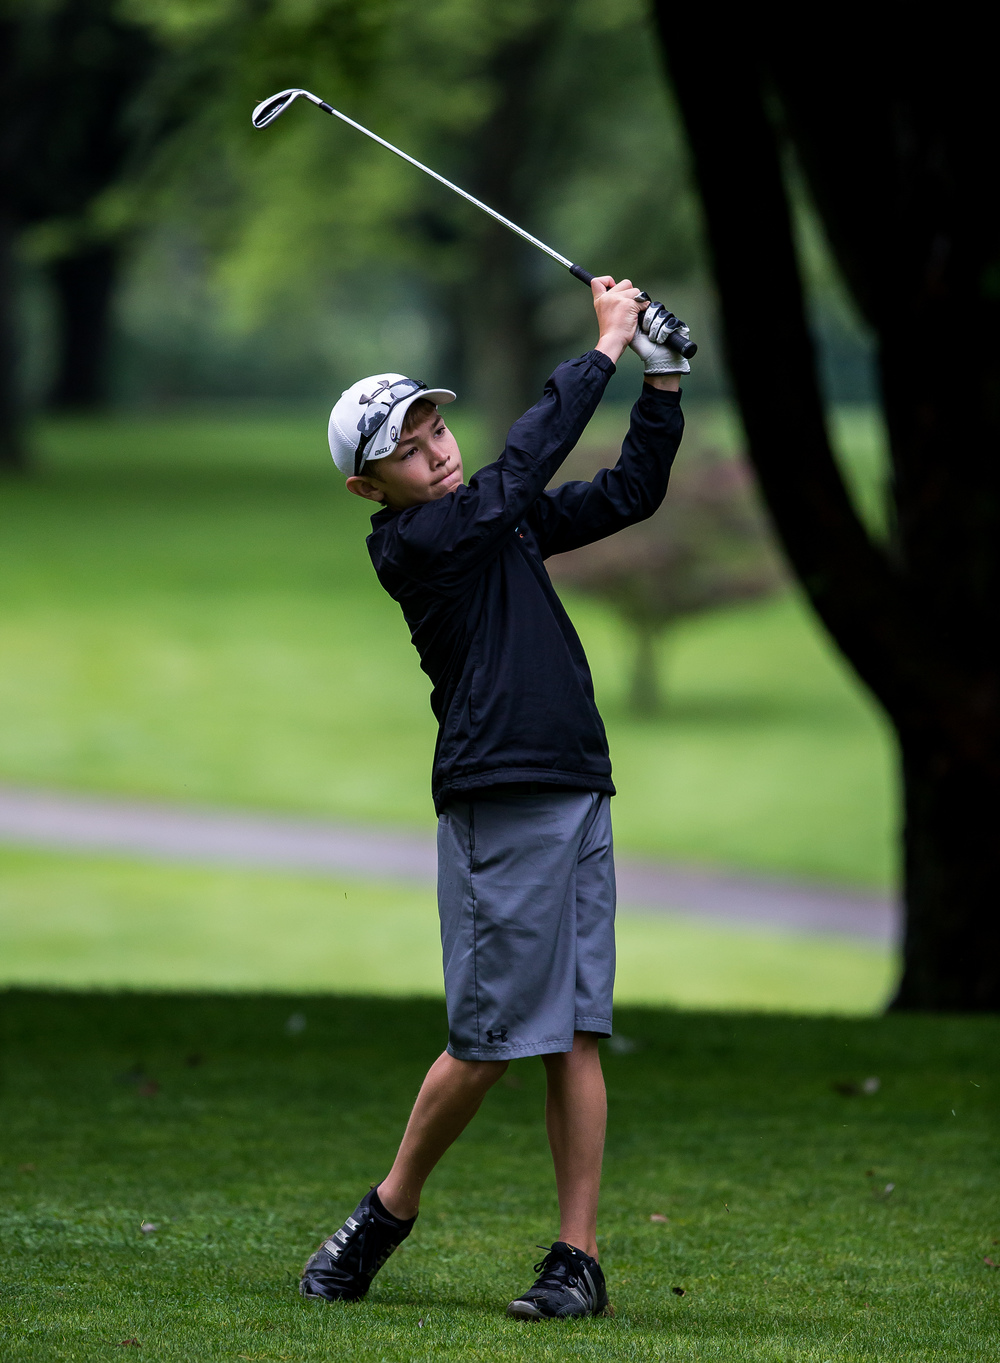 Alex White hits an approach shot on the No. 3 hole during the Drysdale Junior Golf Tournament at Pasfield Golf Course, Thursday, July 9, 2015, in Springfield, Ill. Justin L. Fowler/The State Journal-Register